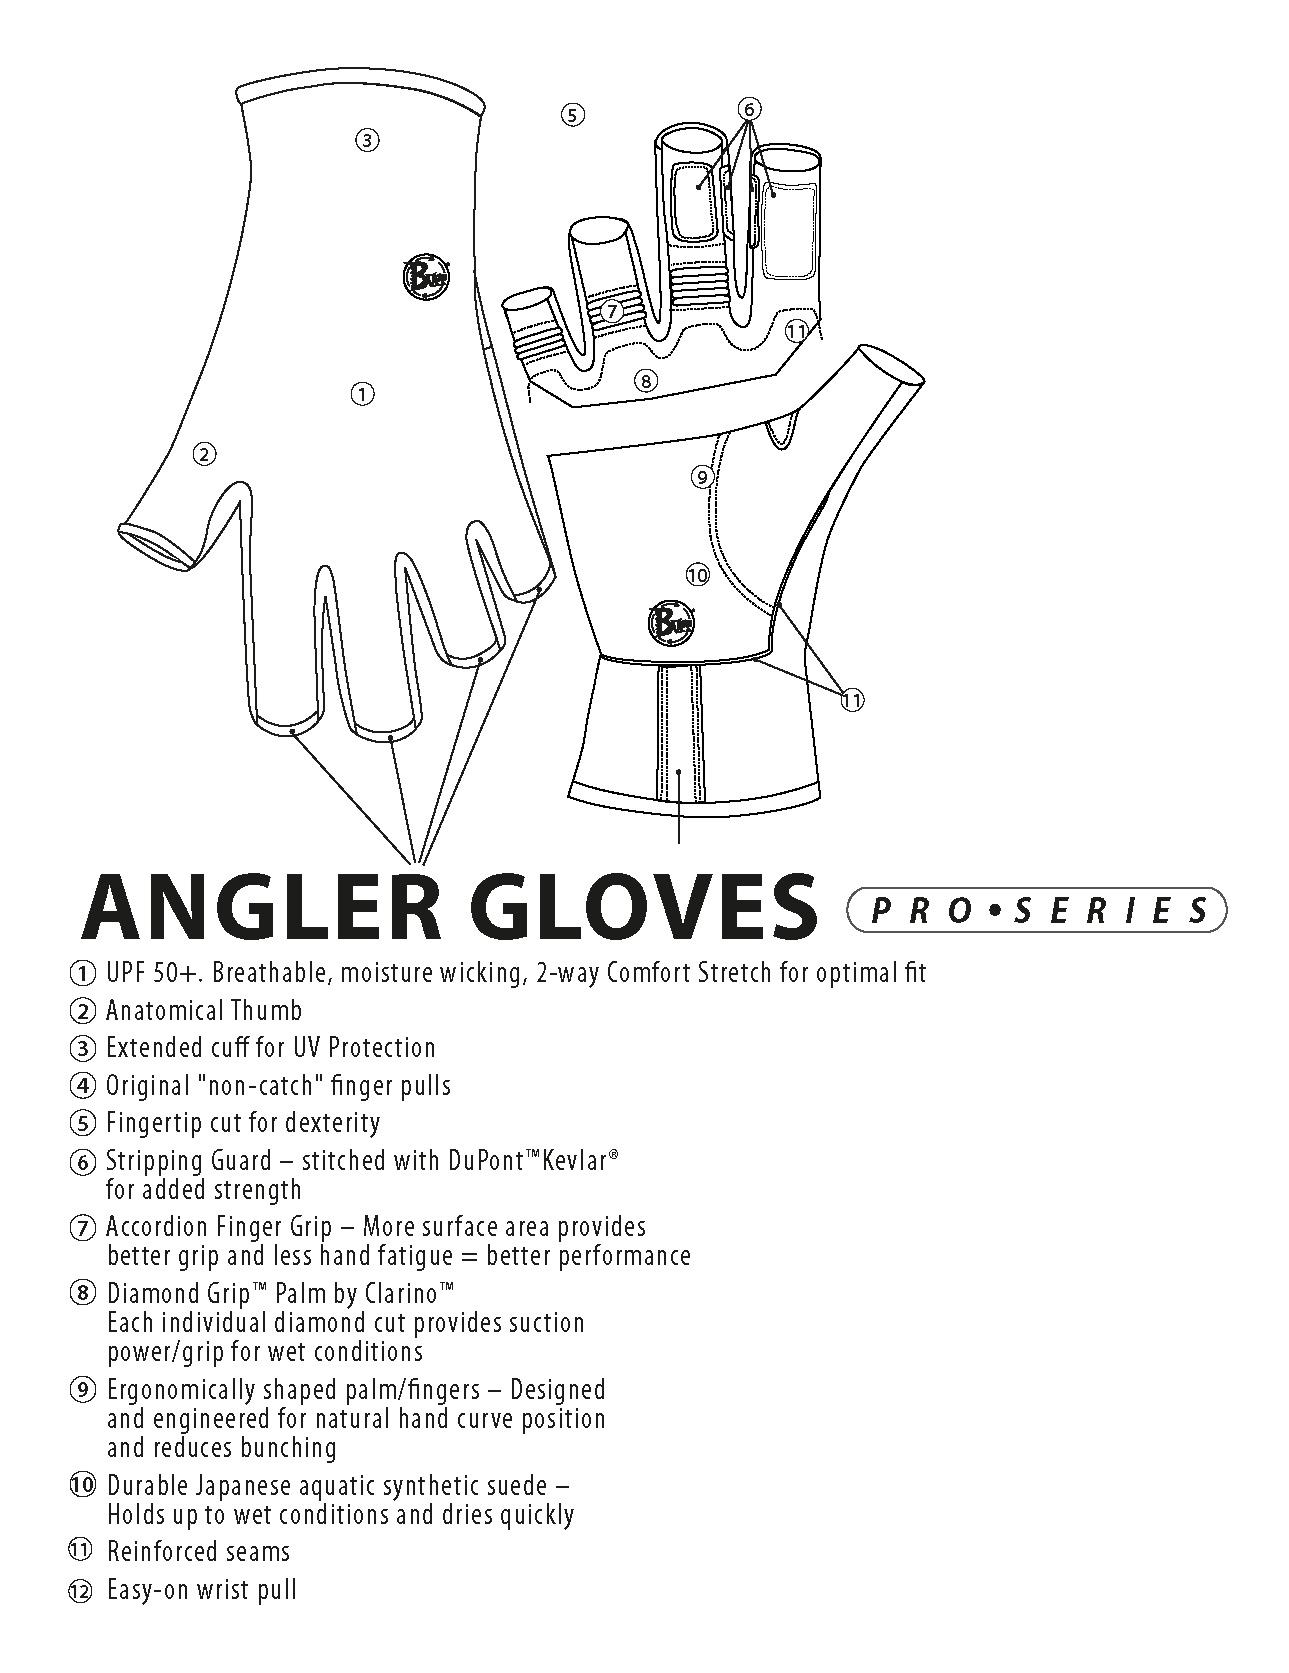 Angler Glove Specifications